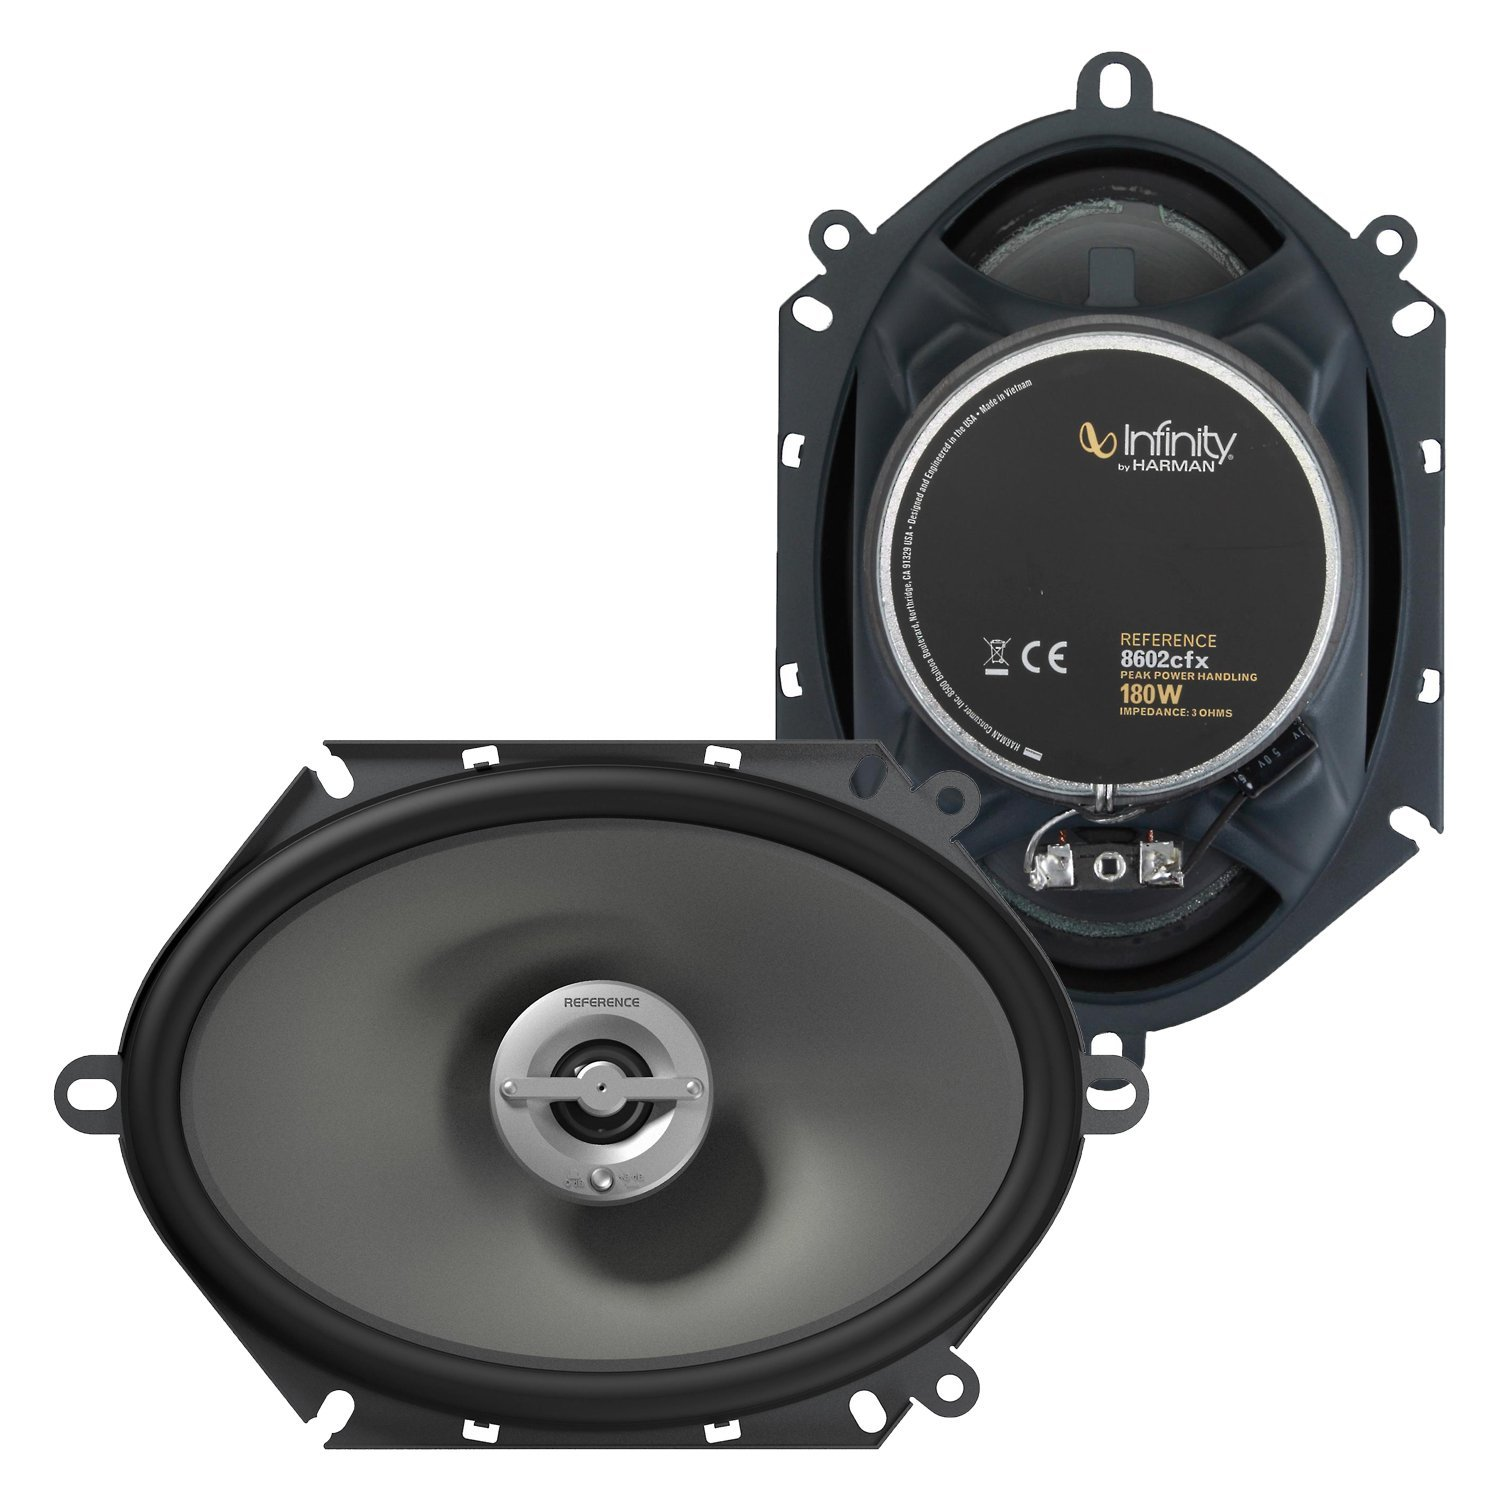 "Infinity Reference 8602cfx 6"" x 8"" / 5"" x 7"" two-way car audio speakers"